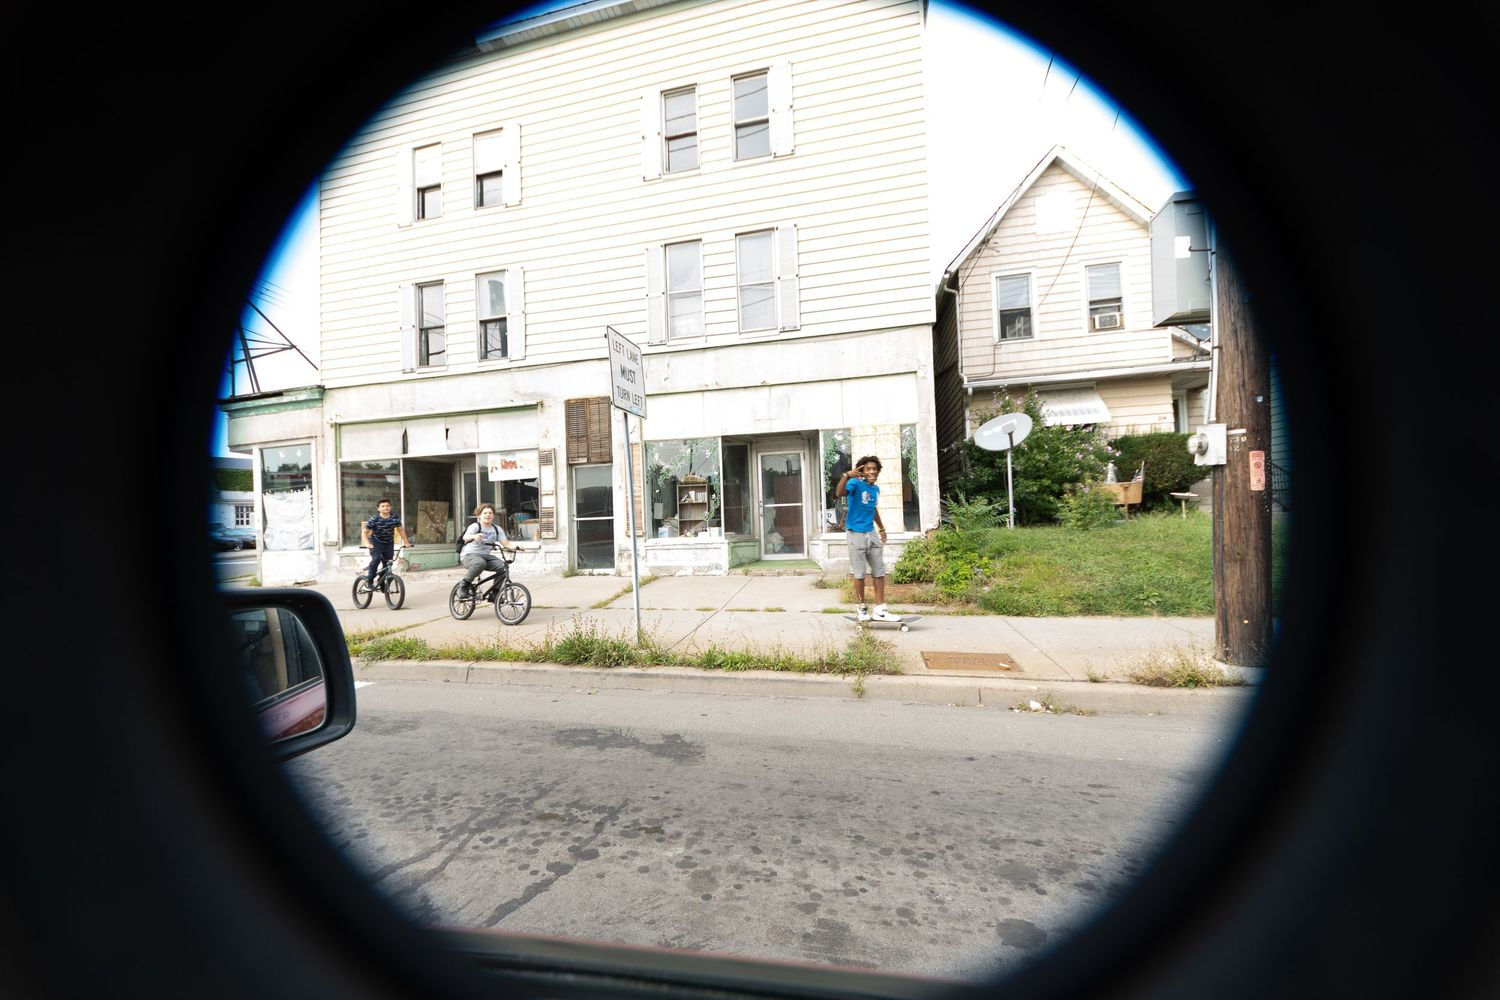 Street youths with lens cap @ 8mm. Binghamton, NY